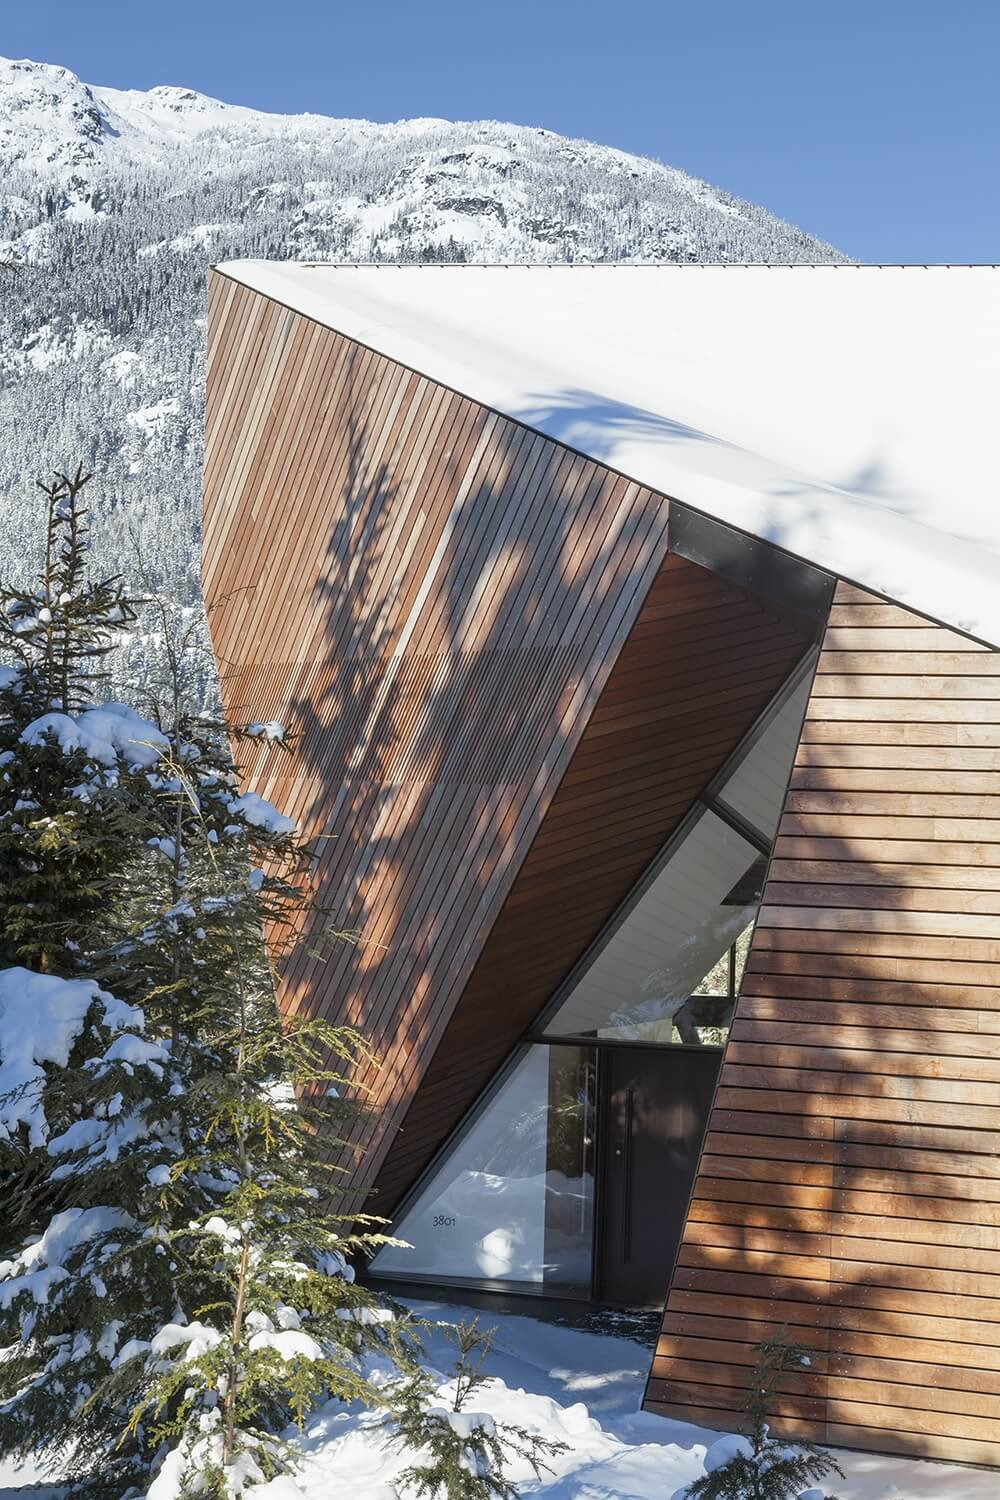 The home's entrance is hidden in a small nook and led up to by a small road connecting to the side street at the top of the valley.